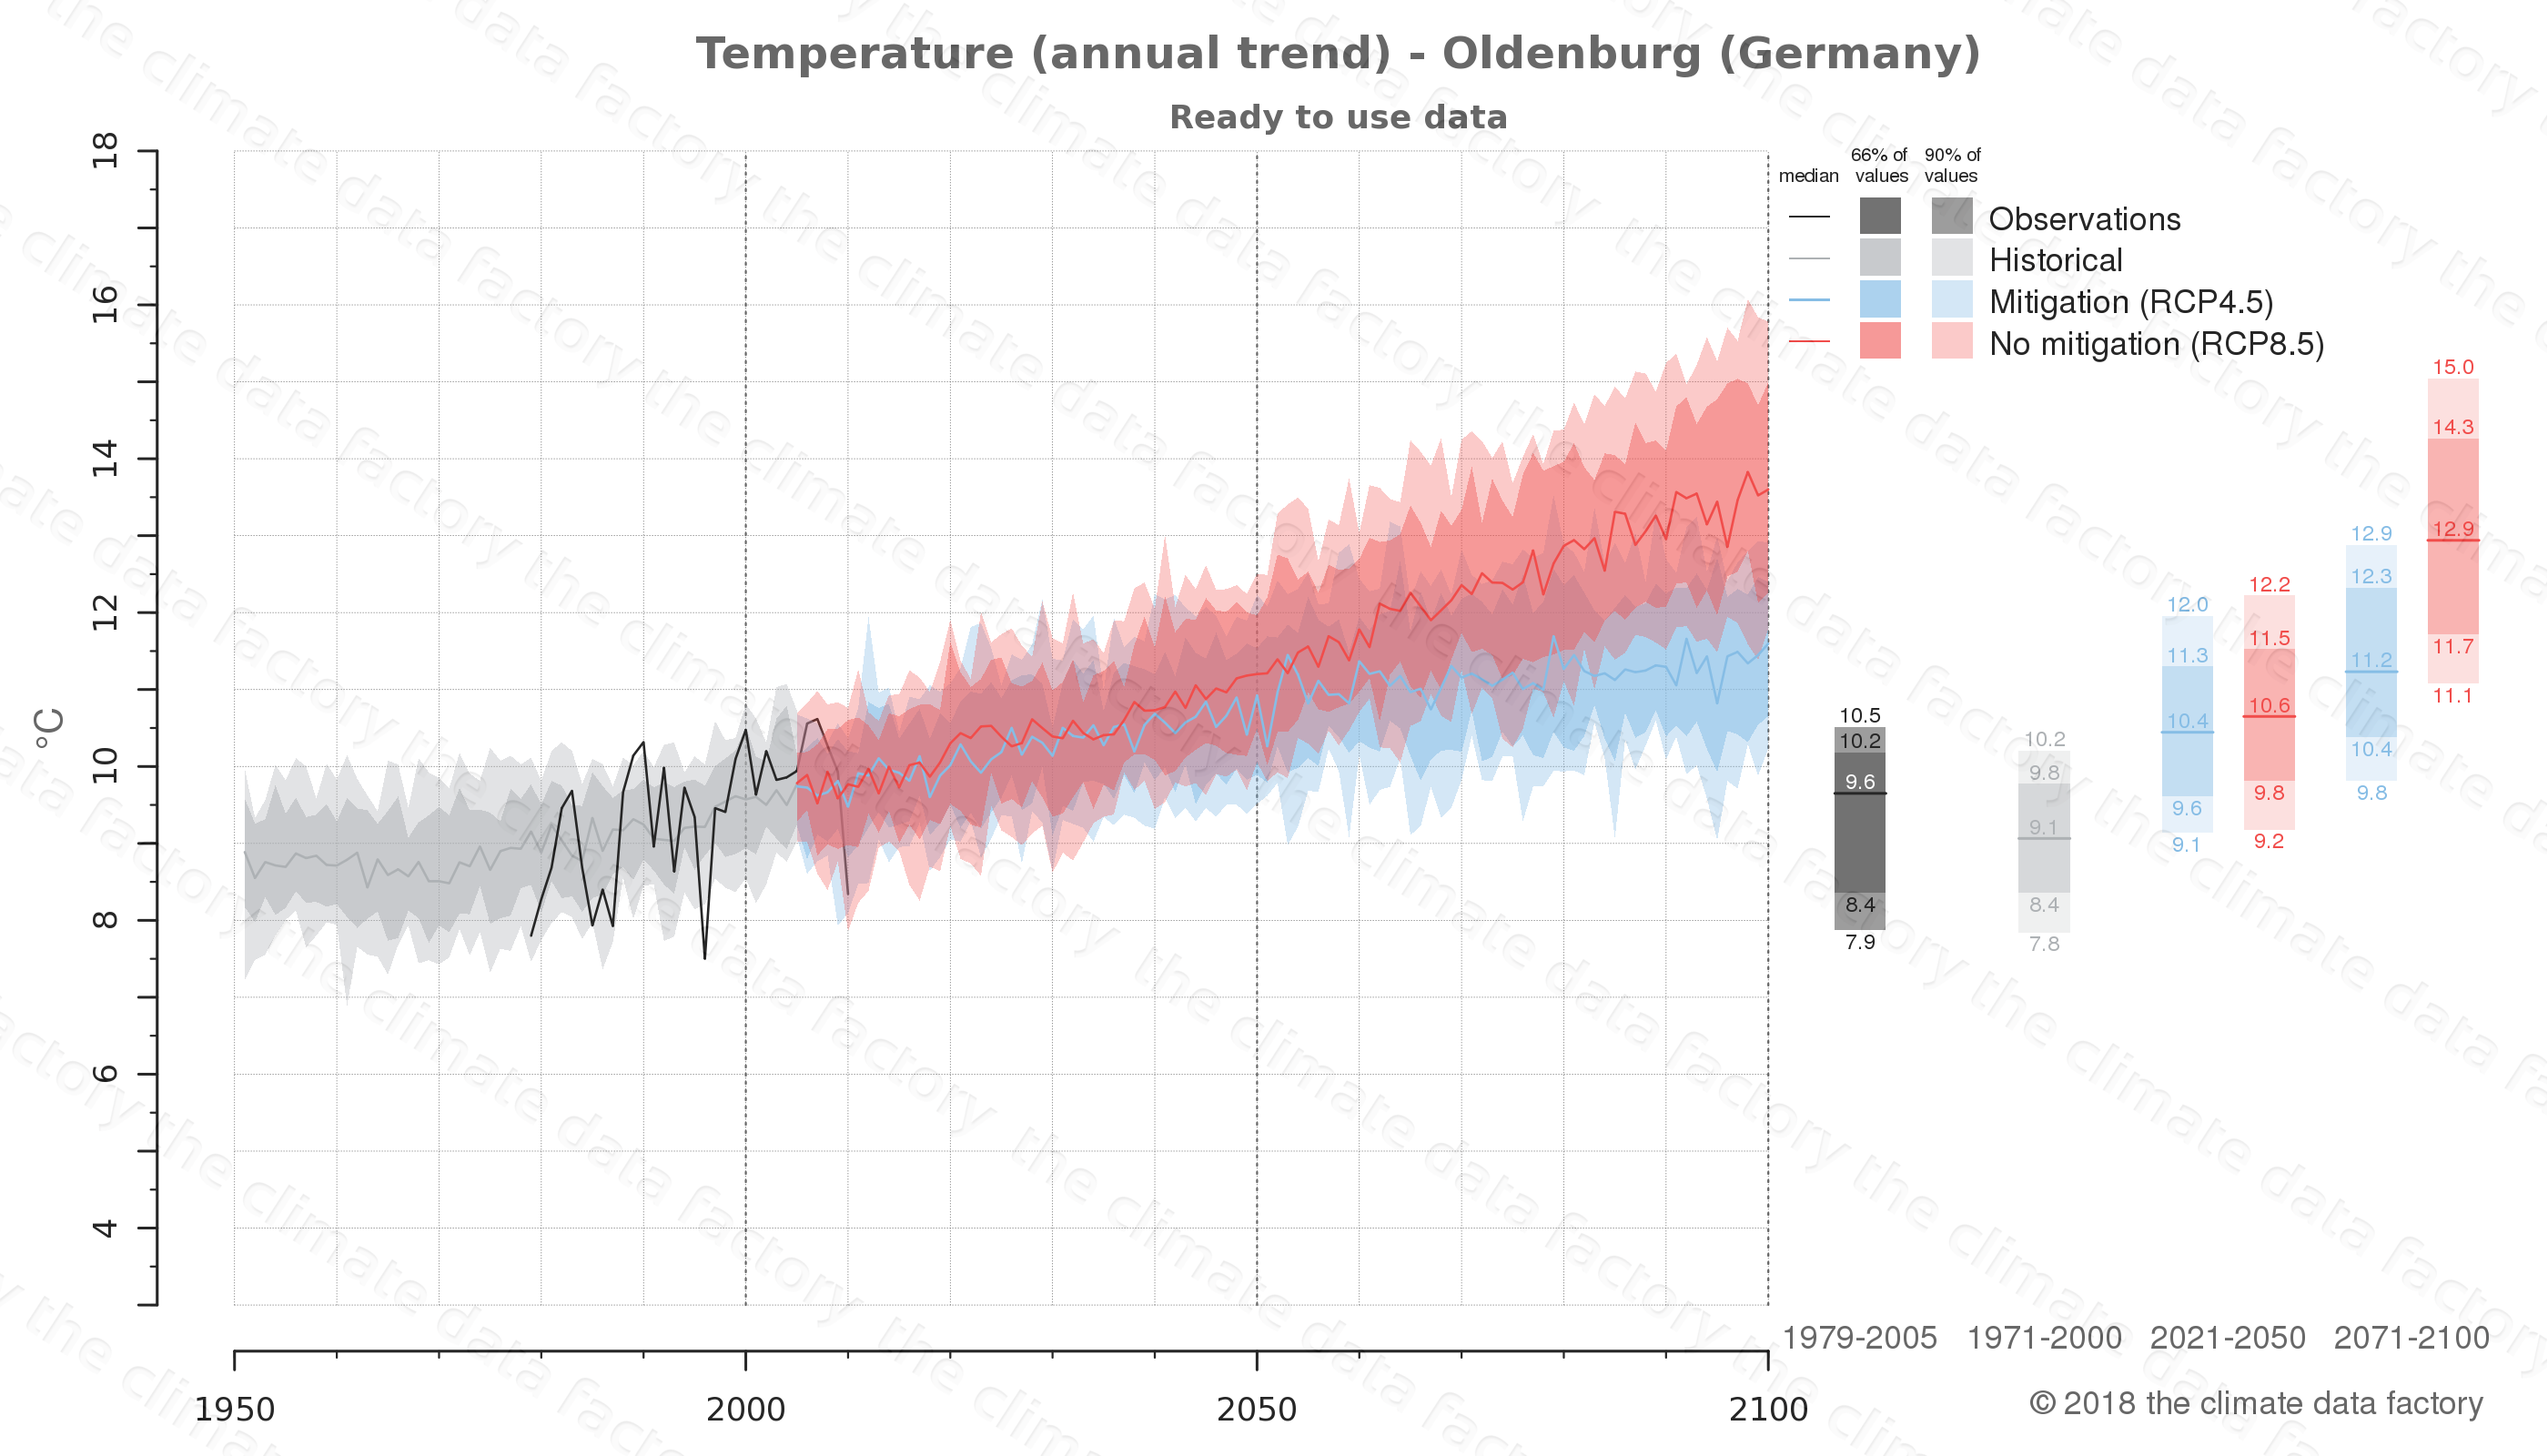 climate change data policy adaptation climate graph city data temperature oldenburg germany